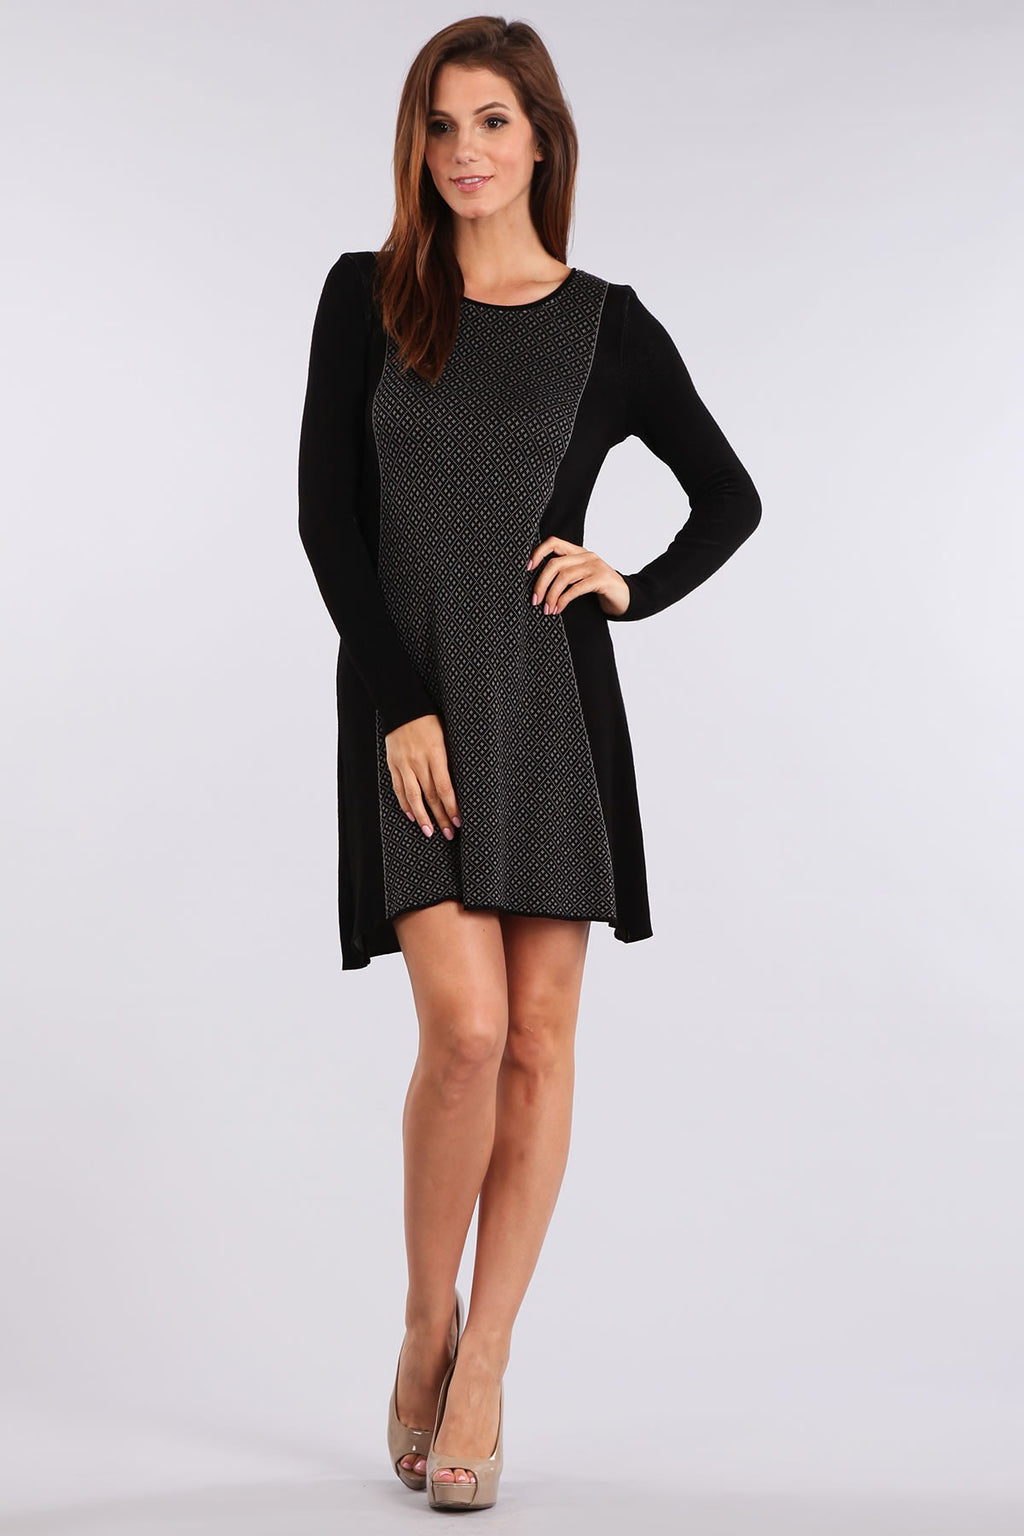 Bria Bella & Co - Black Long Sleeve Dress